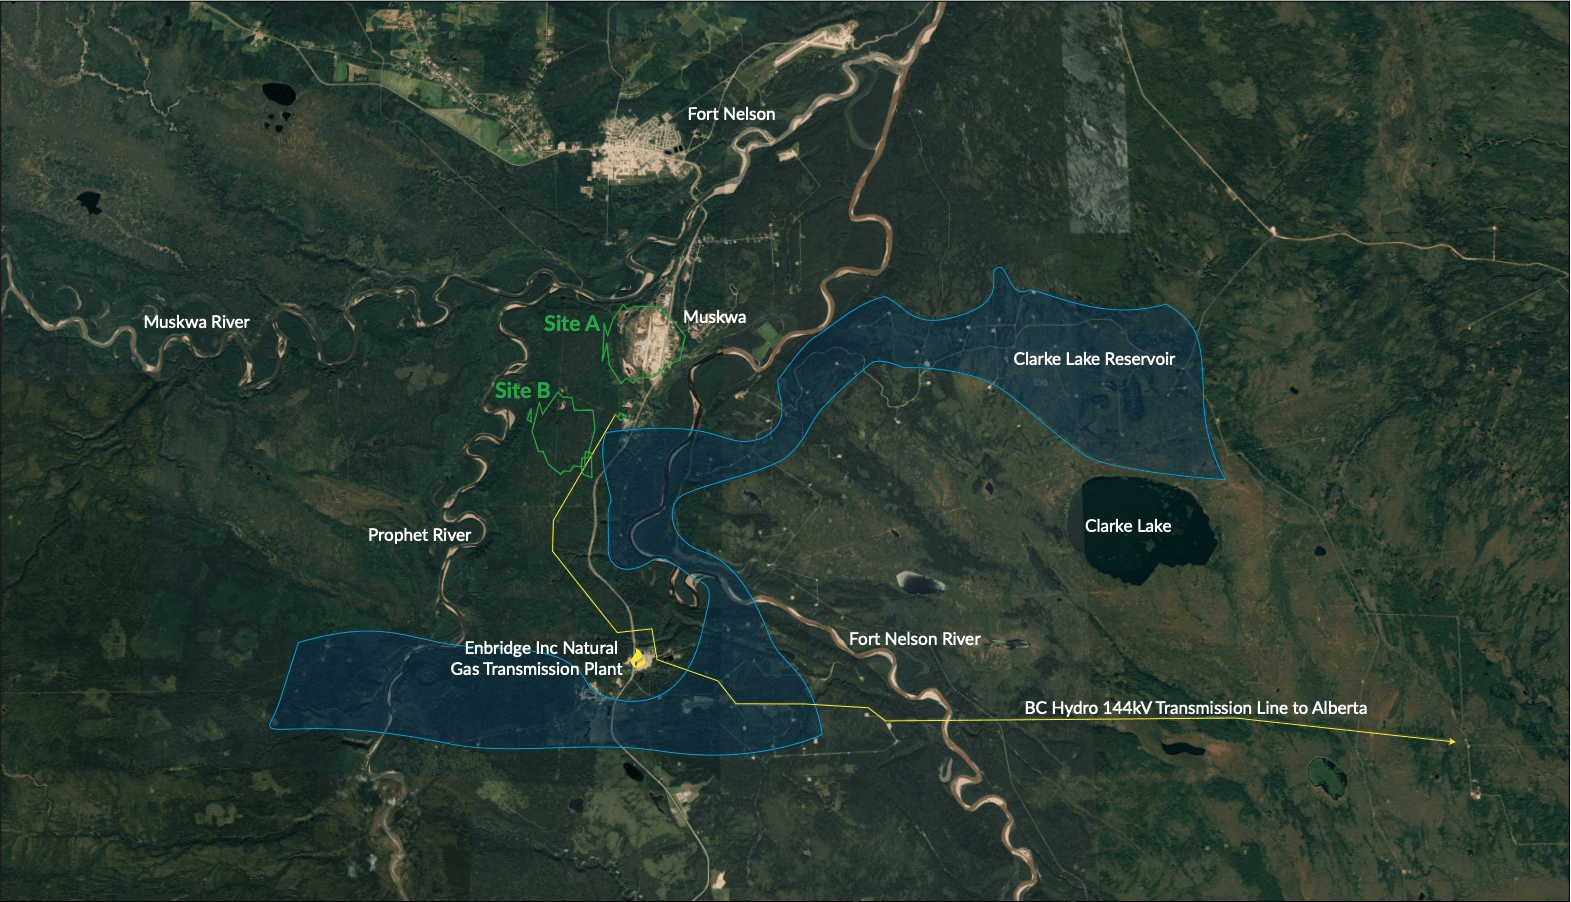 Clarke Lake Geothermal Map